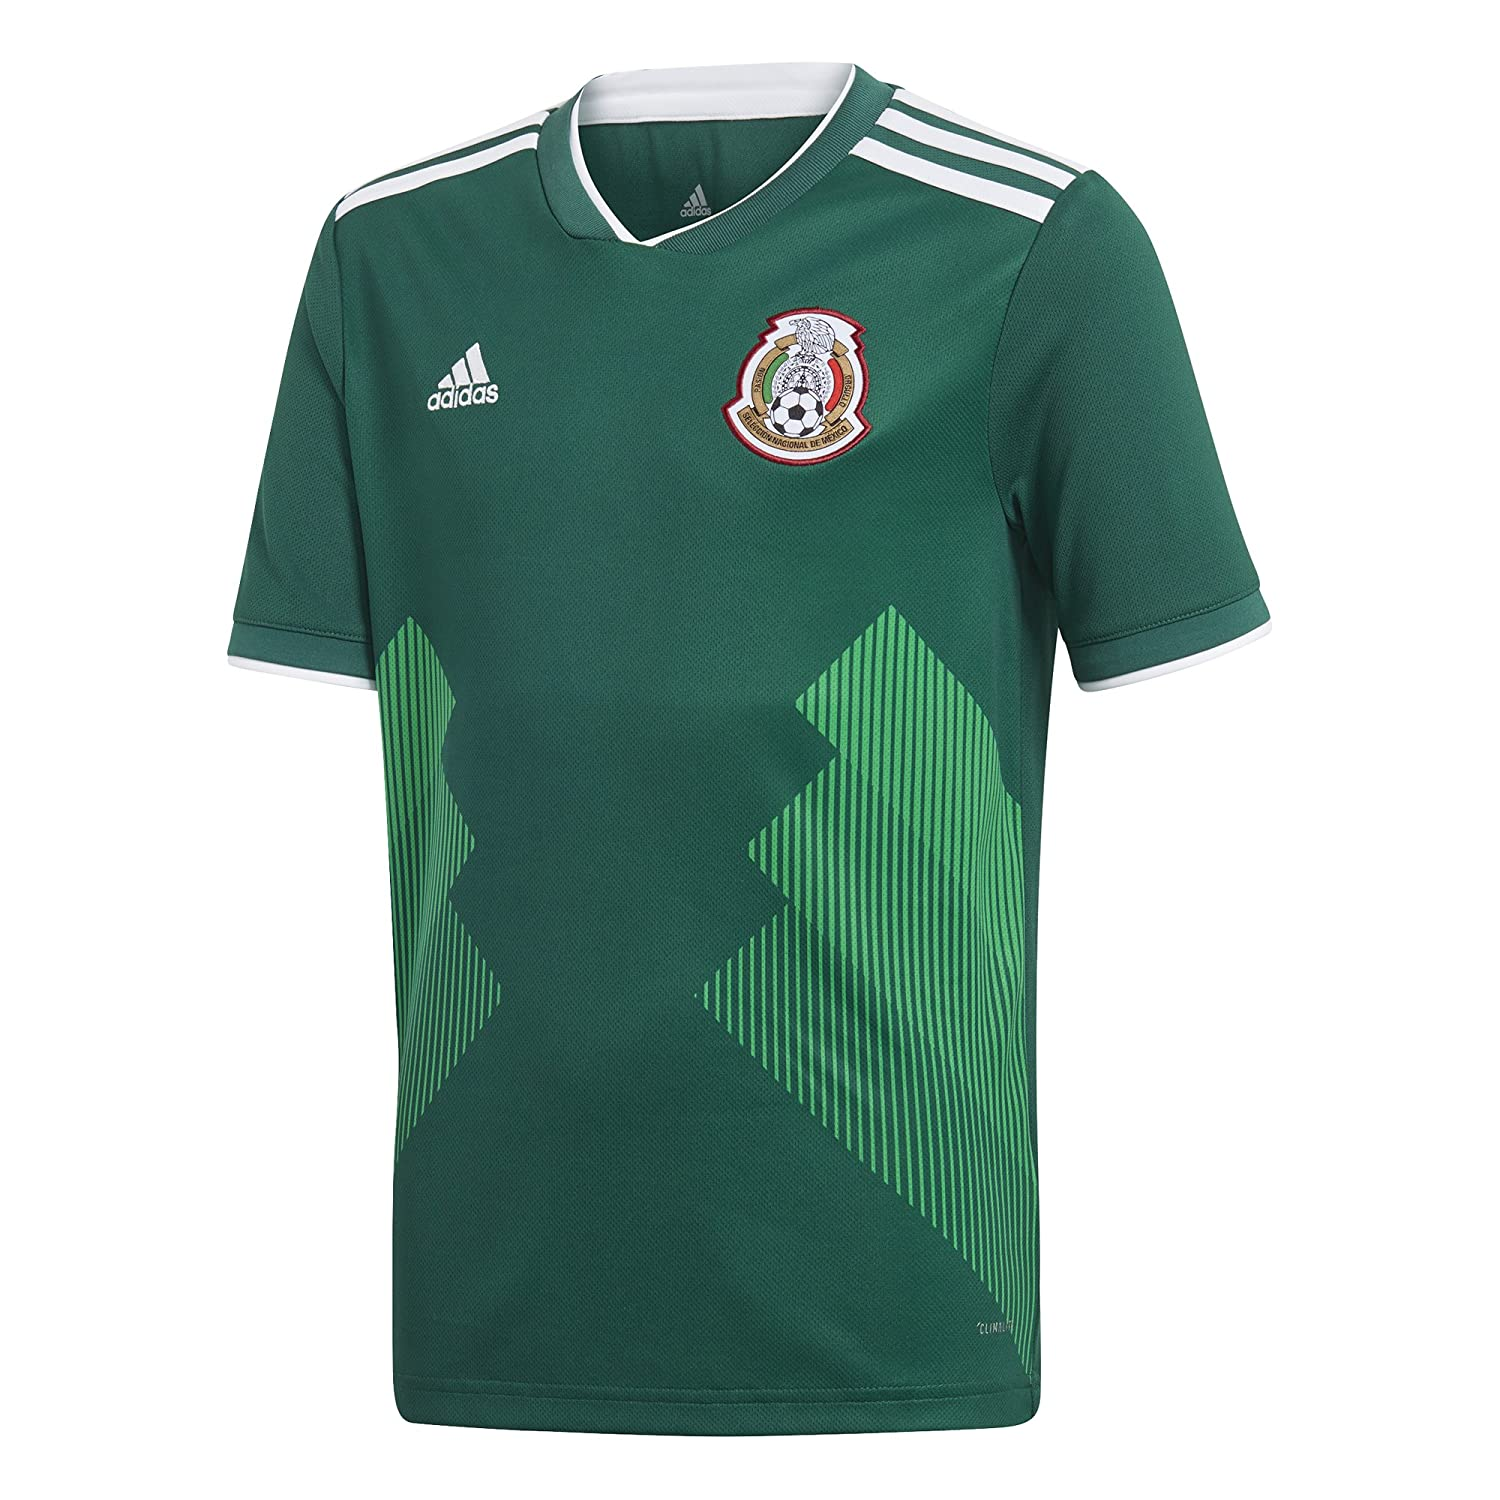 3254abe92 Amazon.com : adidas Youth Mexico 2018 Home Replica Jersey : Sports &  Outdoors